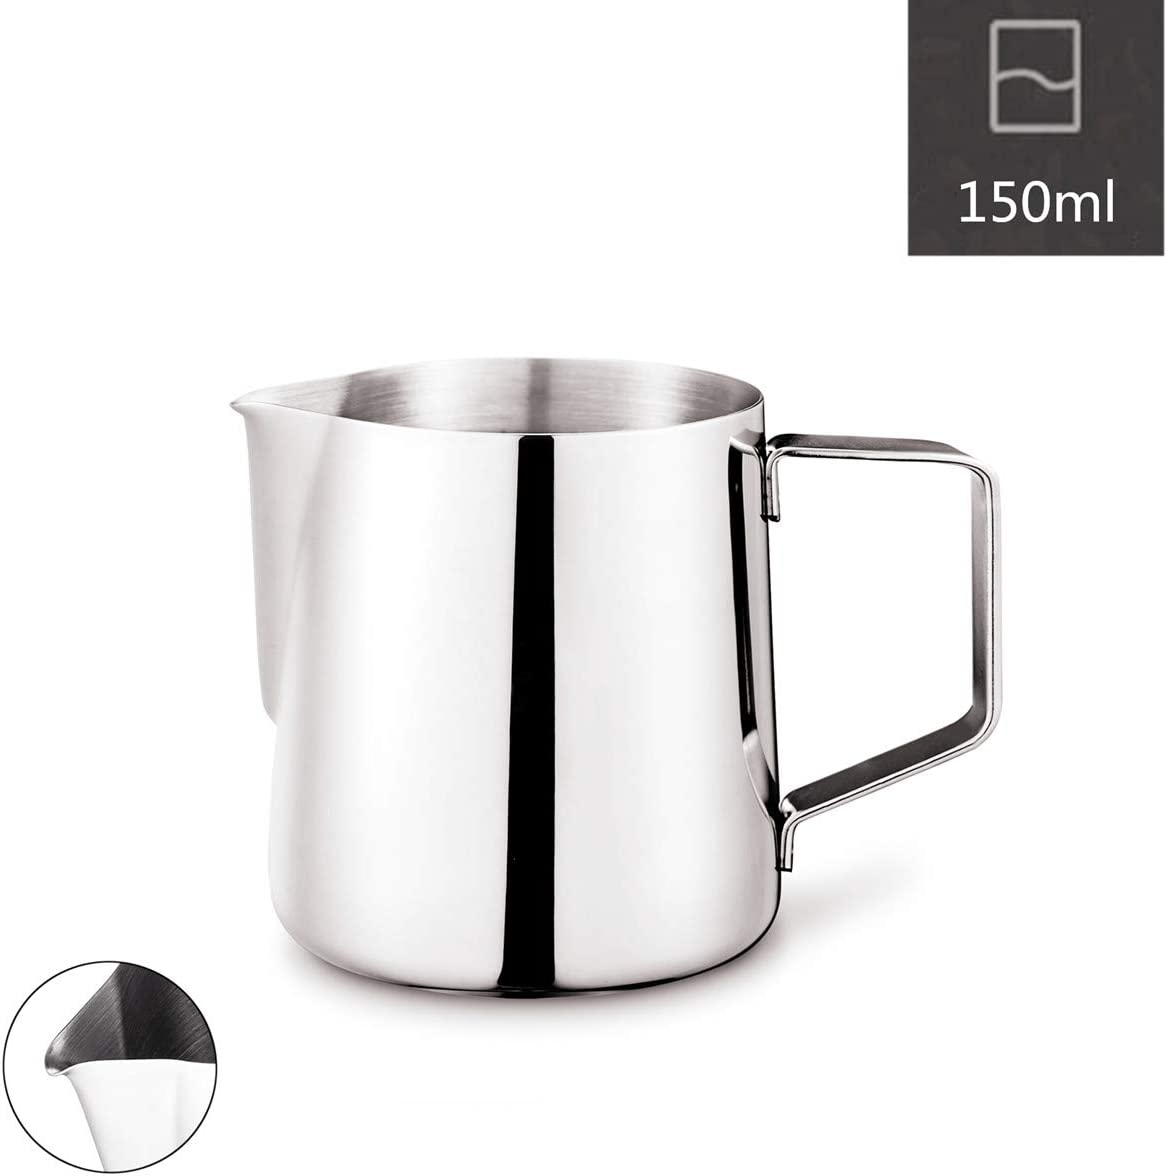 Milk Frothing Pitcher, Stainless Steel Latte Art Creamer Cup Silver 5 oz (150 ml) for Espresso Machines,Polished Finished